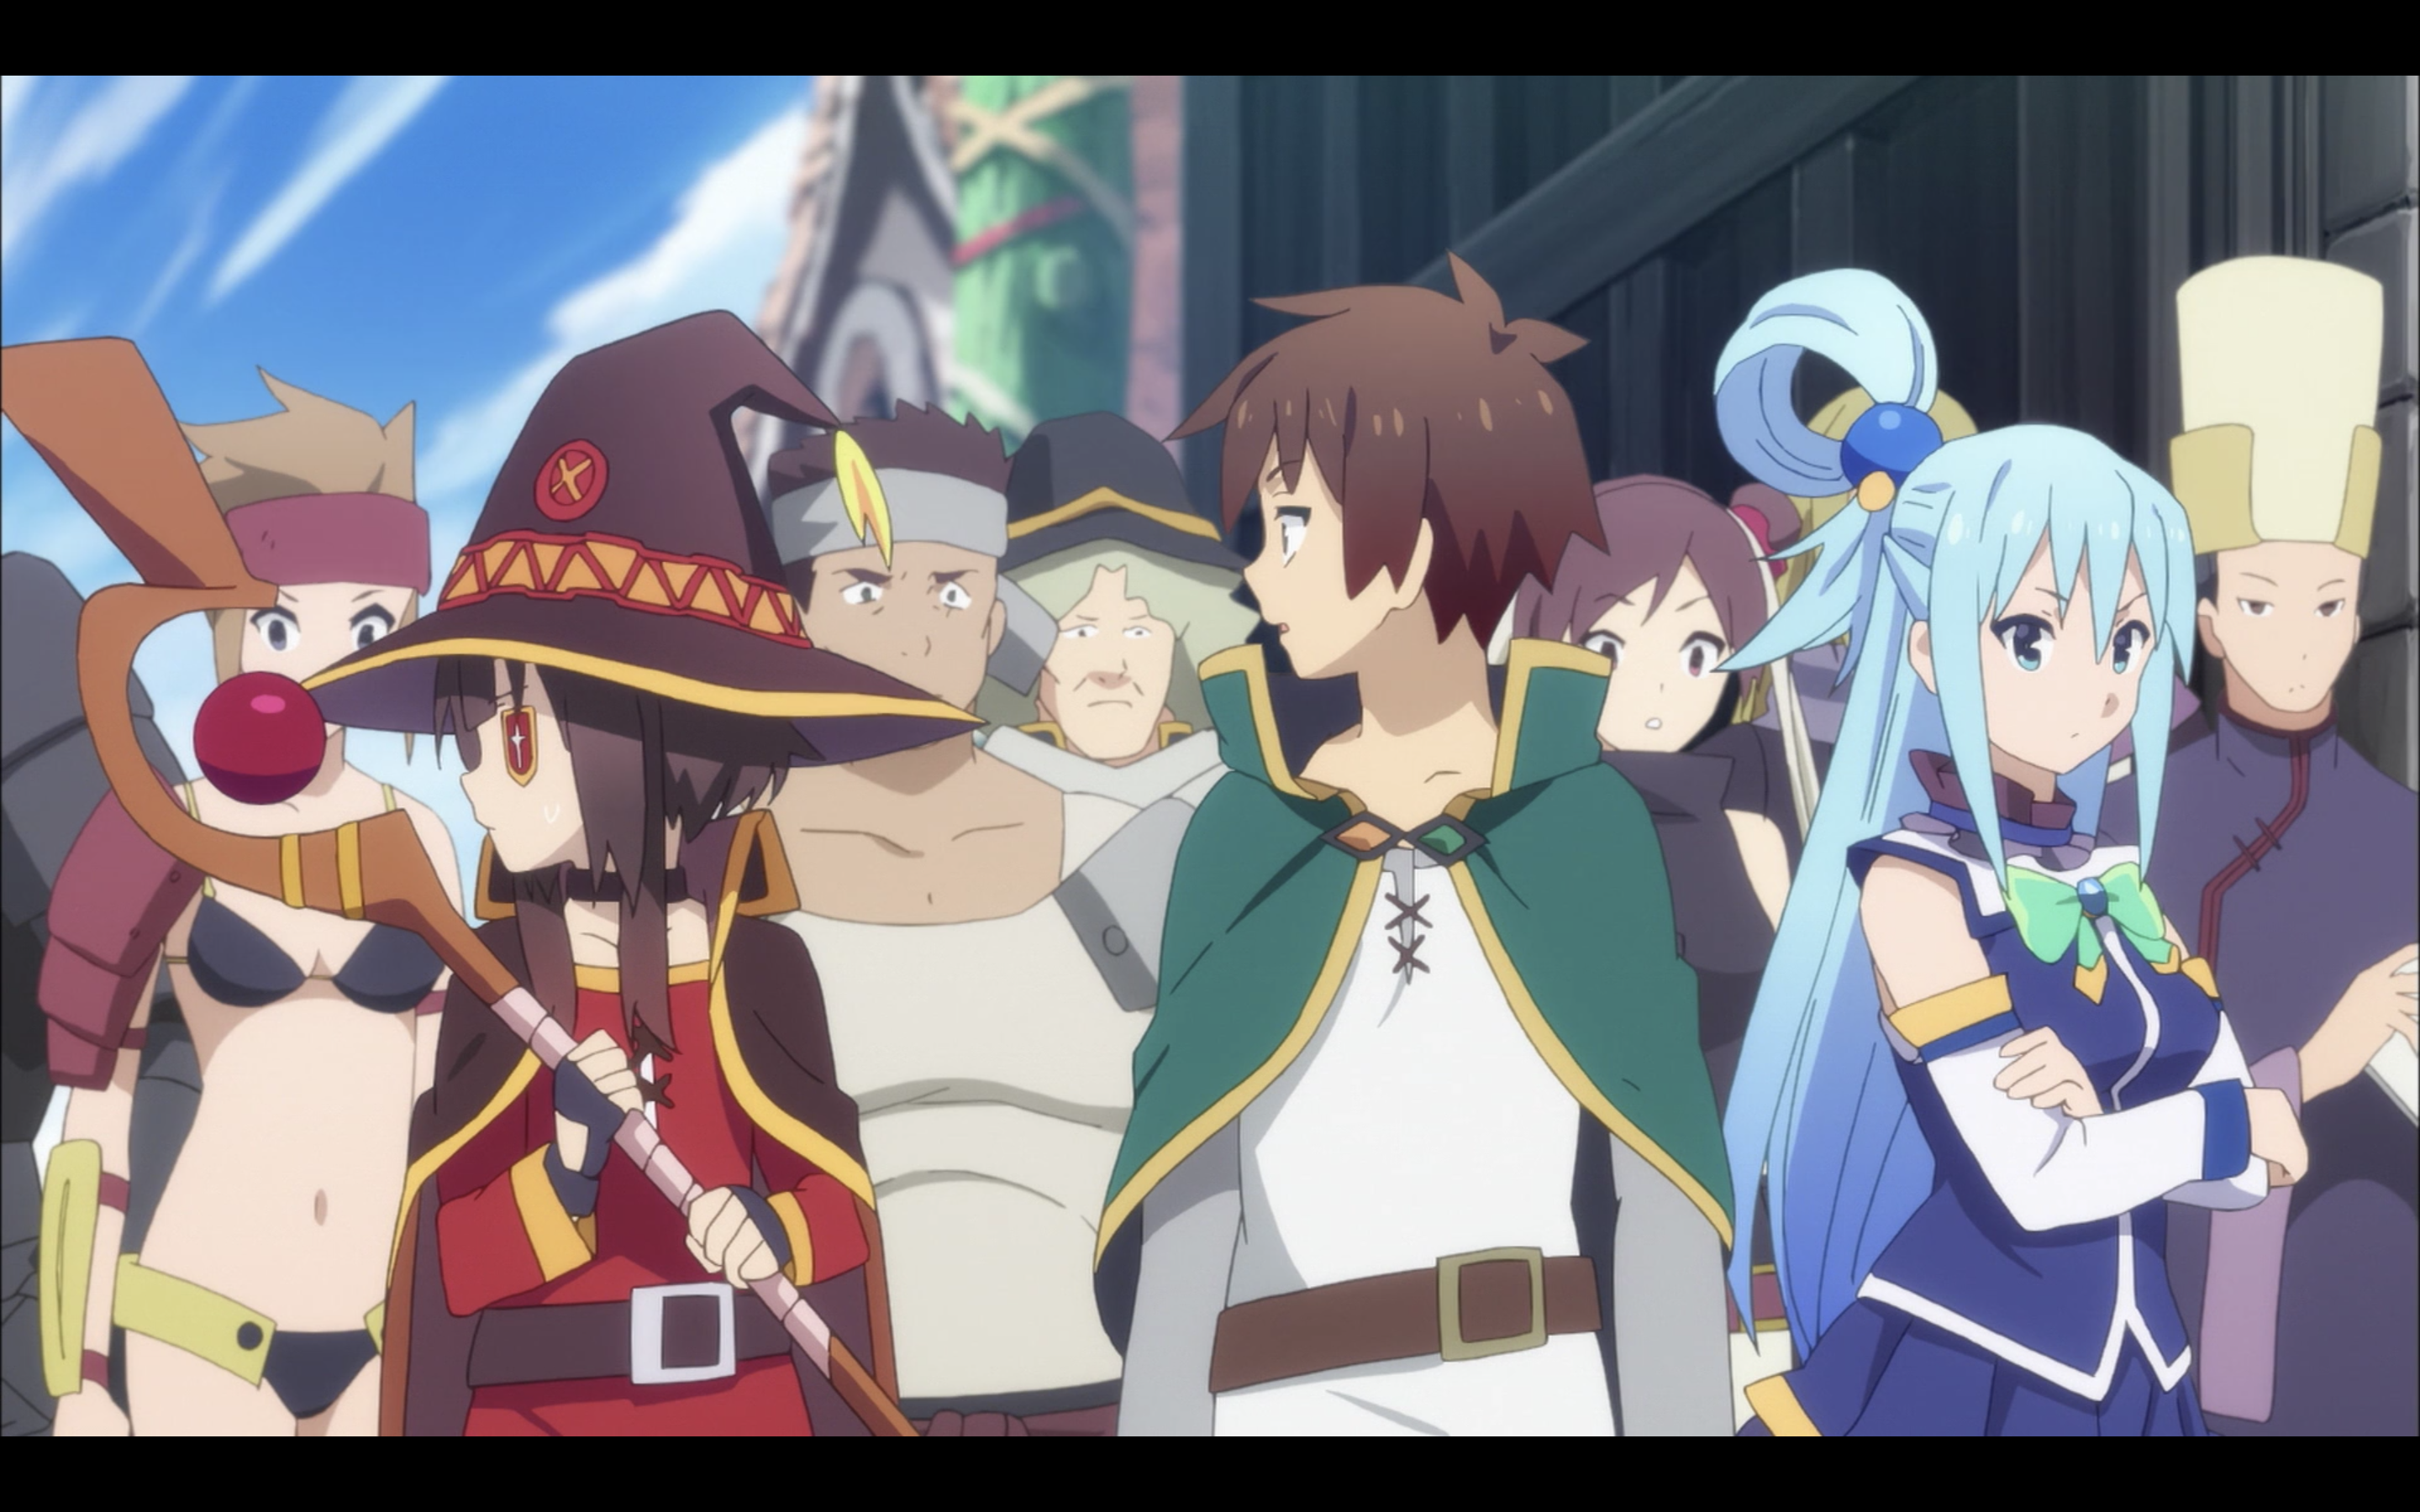 KonoSuba in 2020 (With images) Anime, Manga pictures